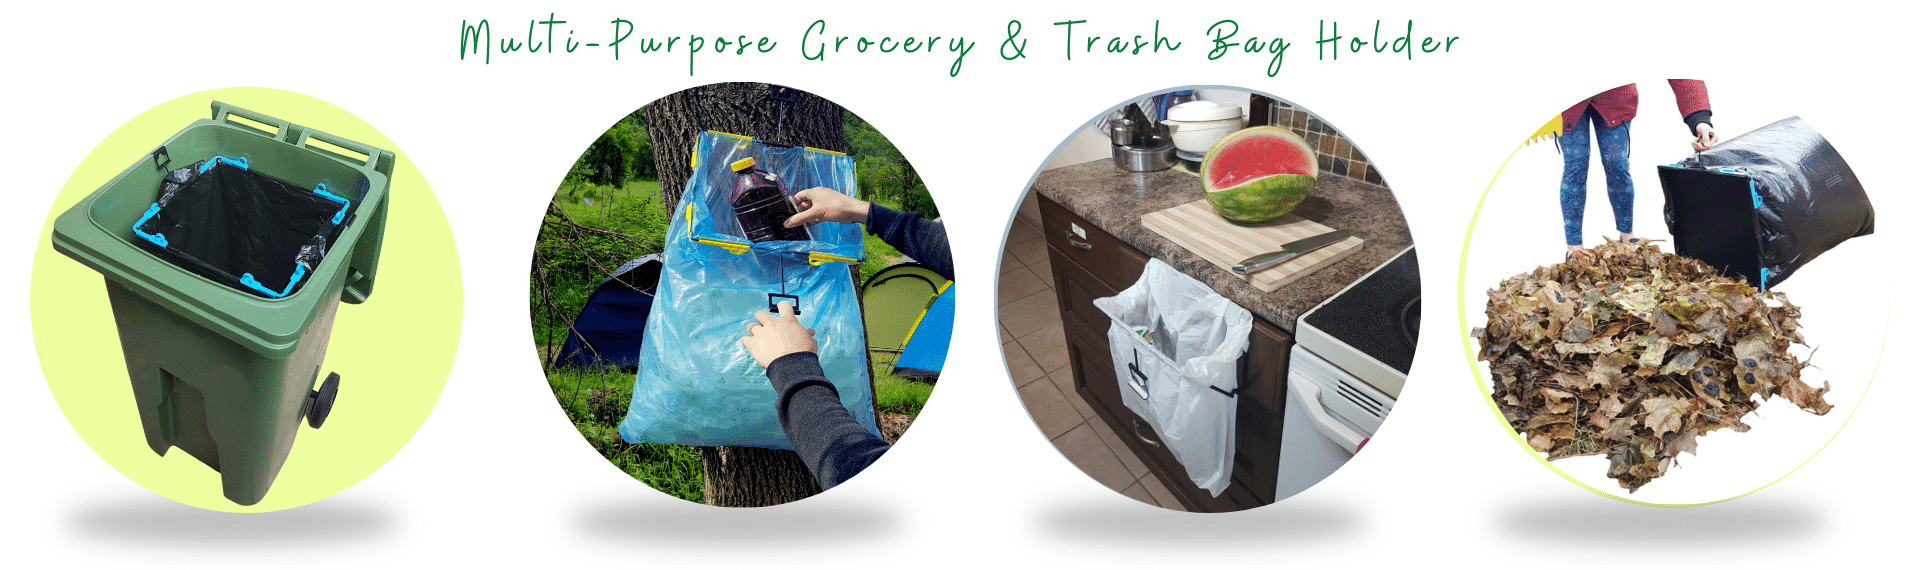 BagEZ grocery trash bag holder circle banner website